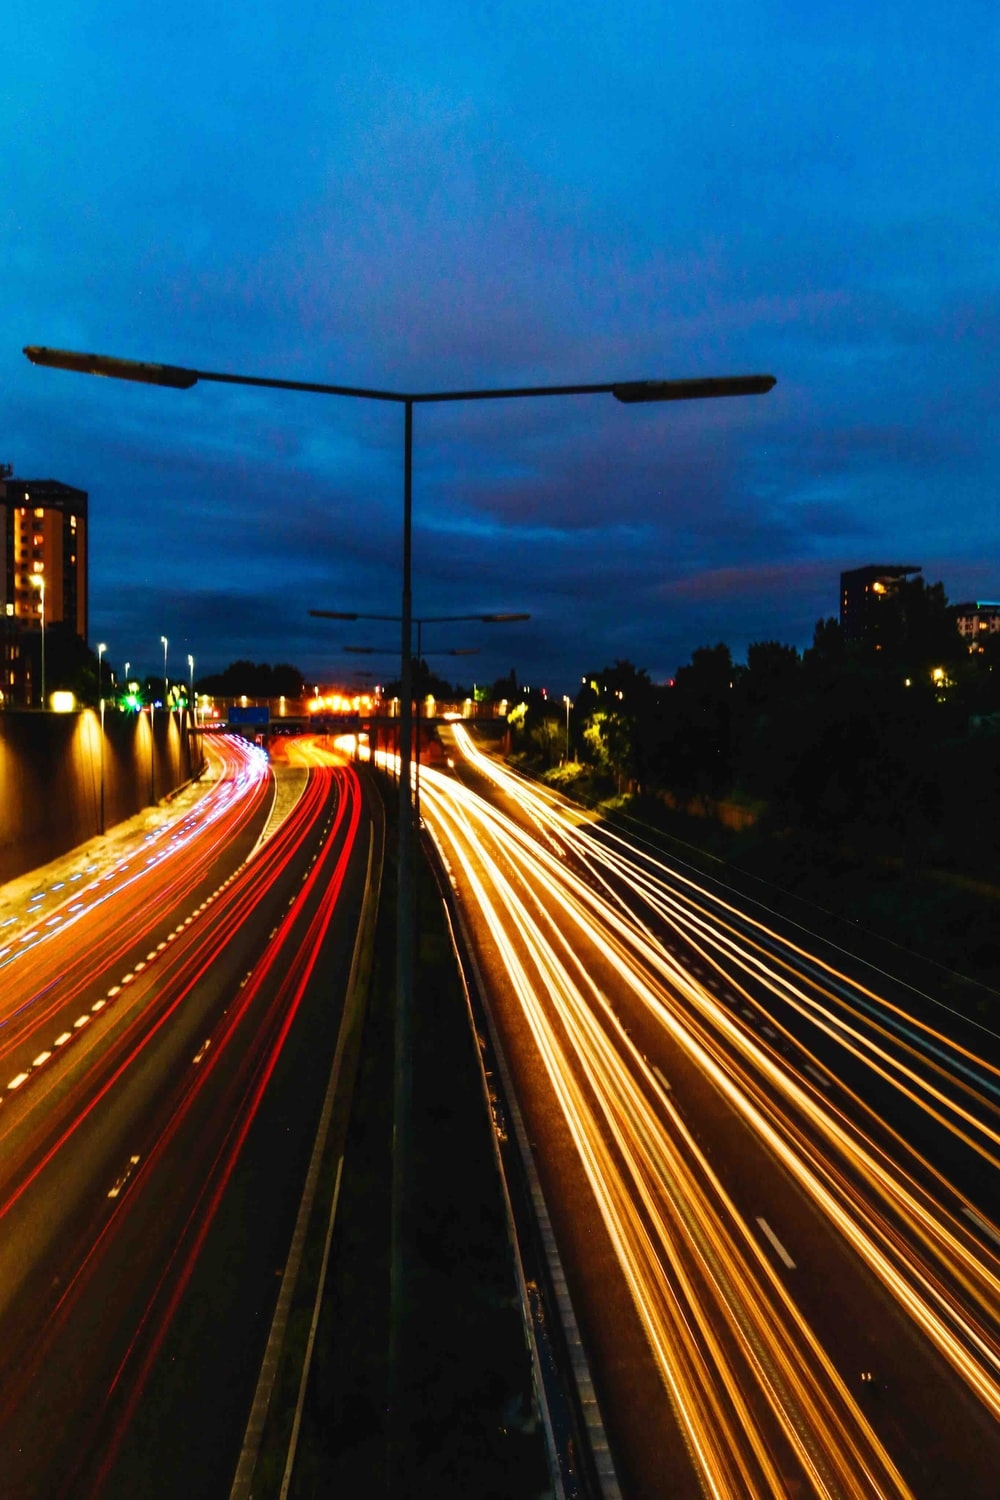 time lapse photography of passing cars on road during nighttime